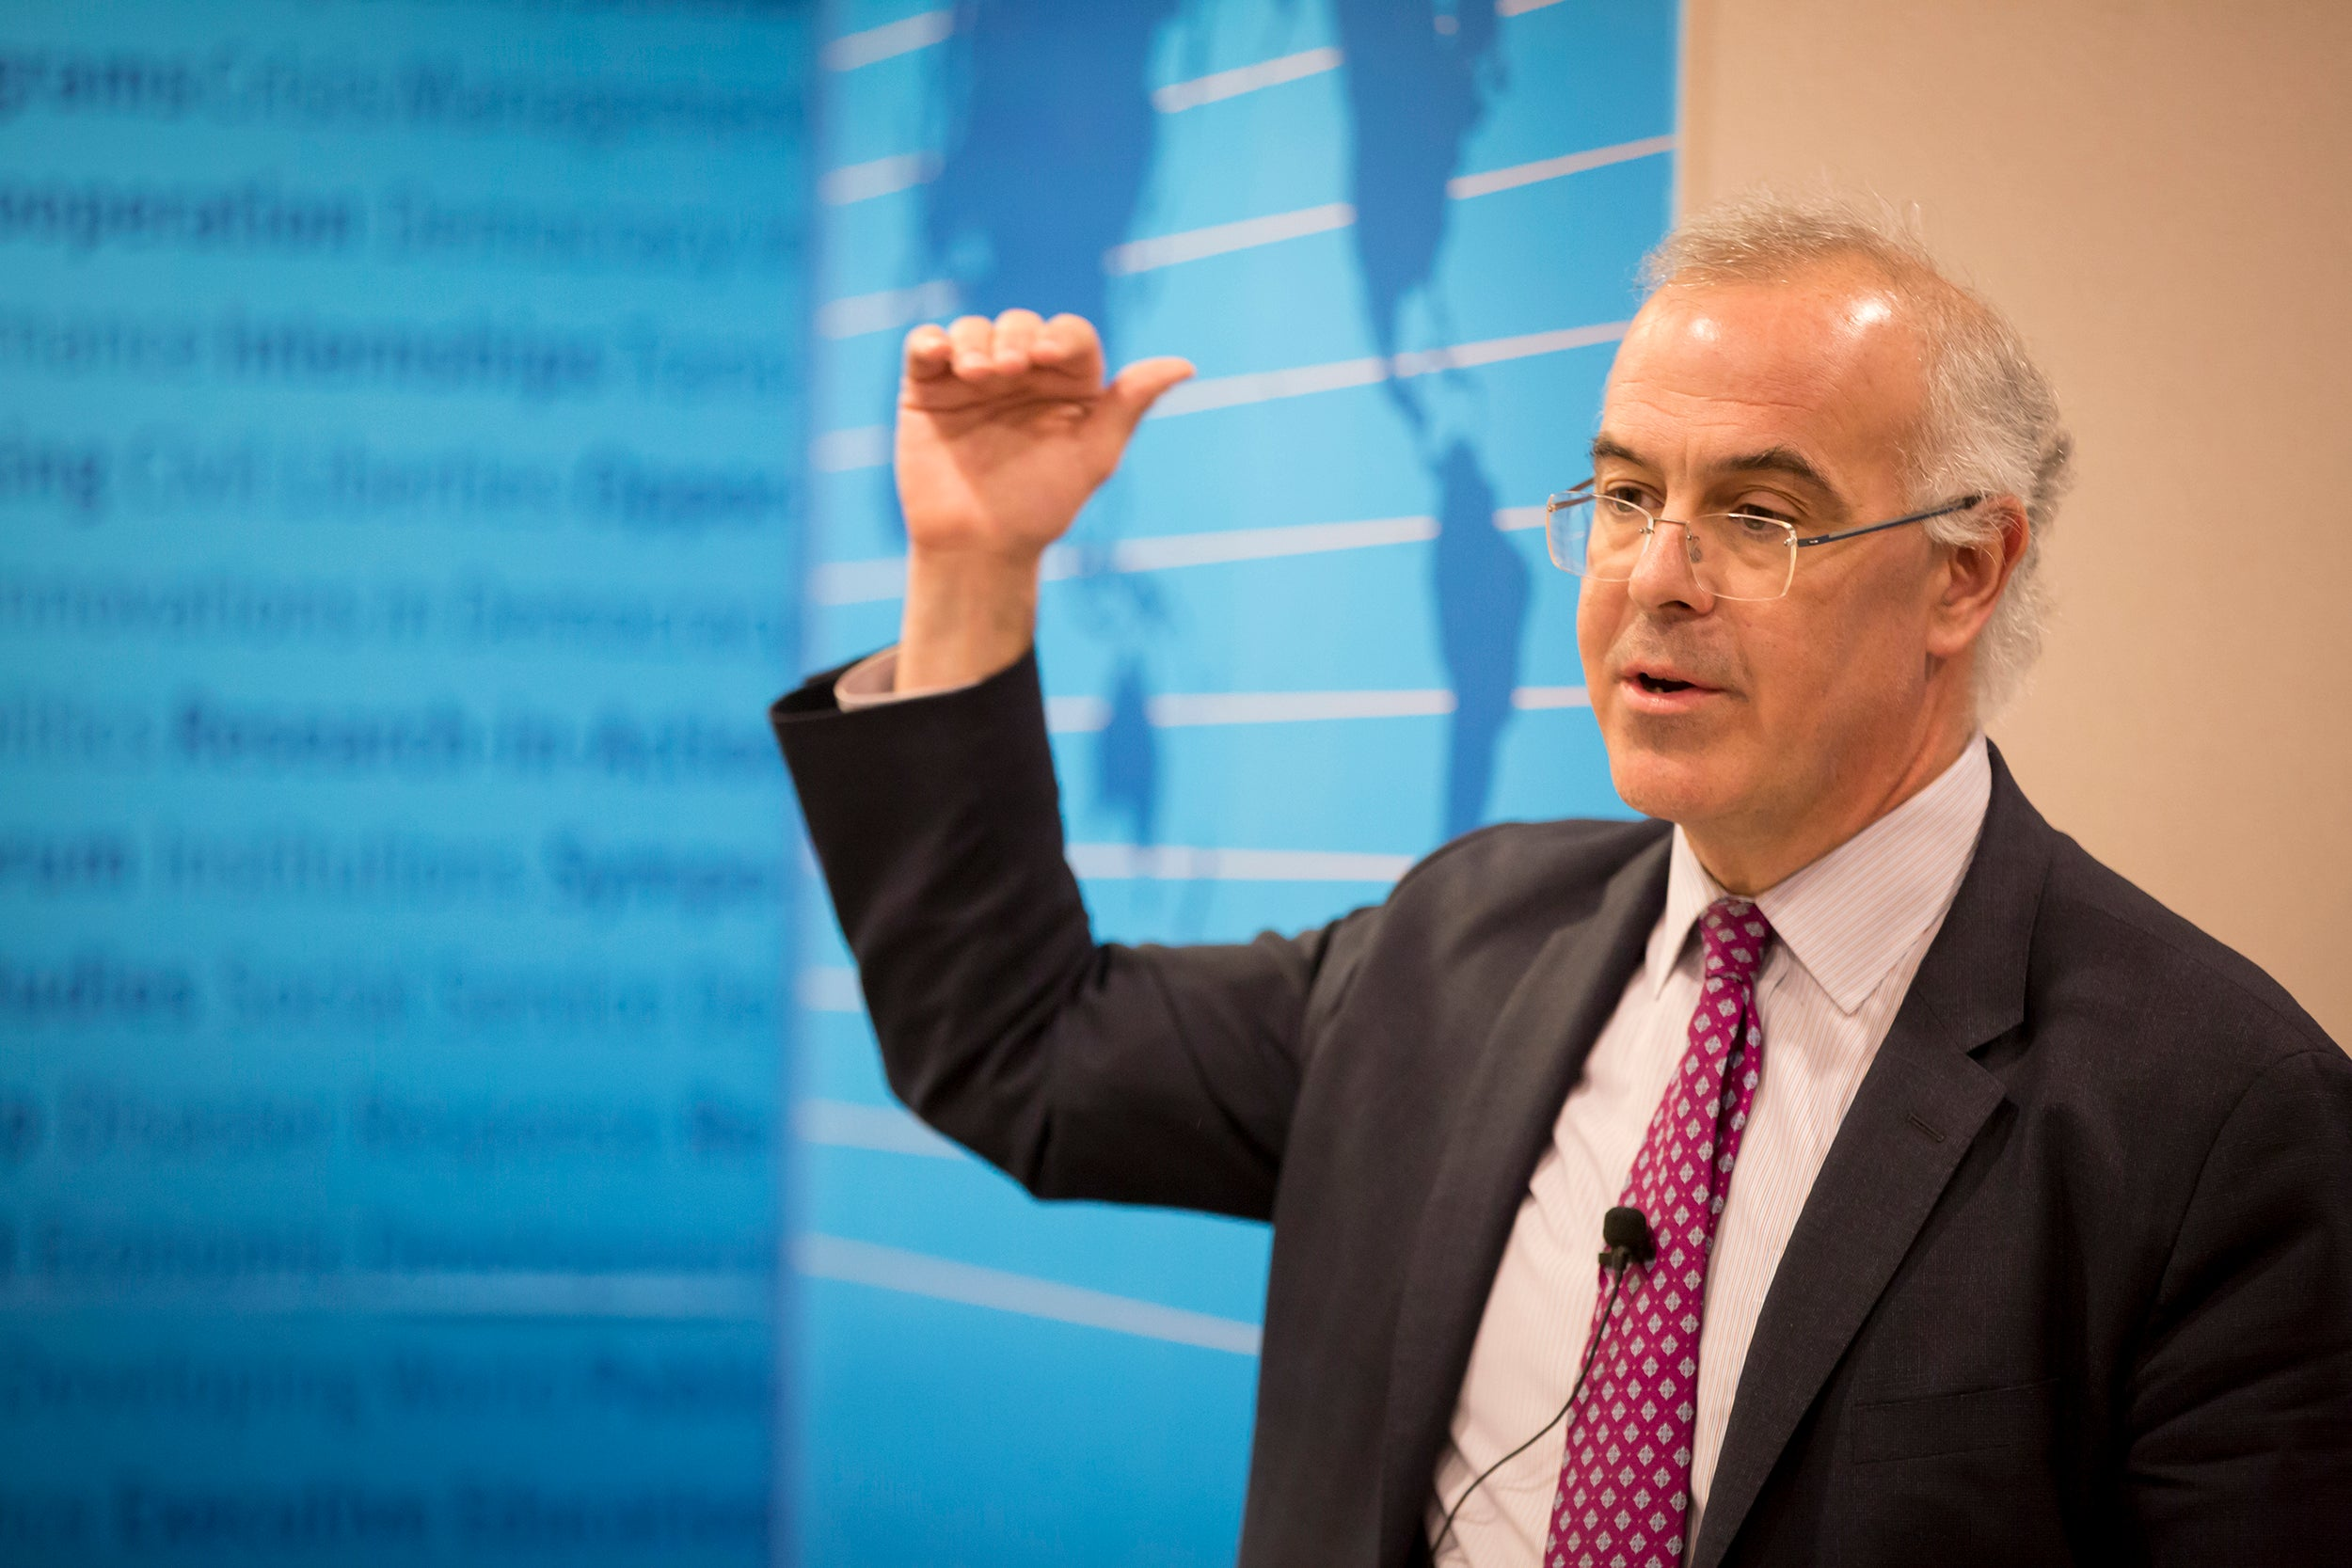 """In an Ash Center talk about tribalism and community, New York Times columnist David Brooks diagnosed the U.S. as needing to develop a better understanding of """"why living in a democratic society is a better way of life."""""""